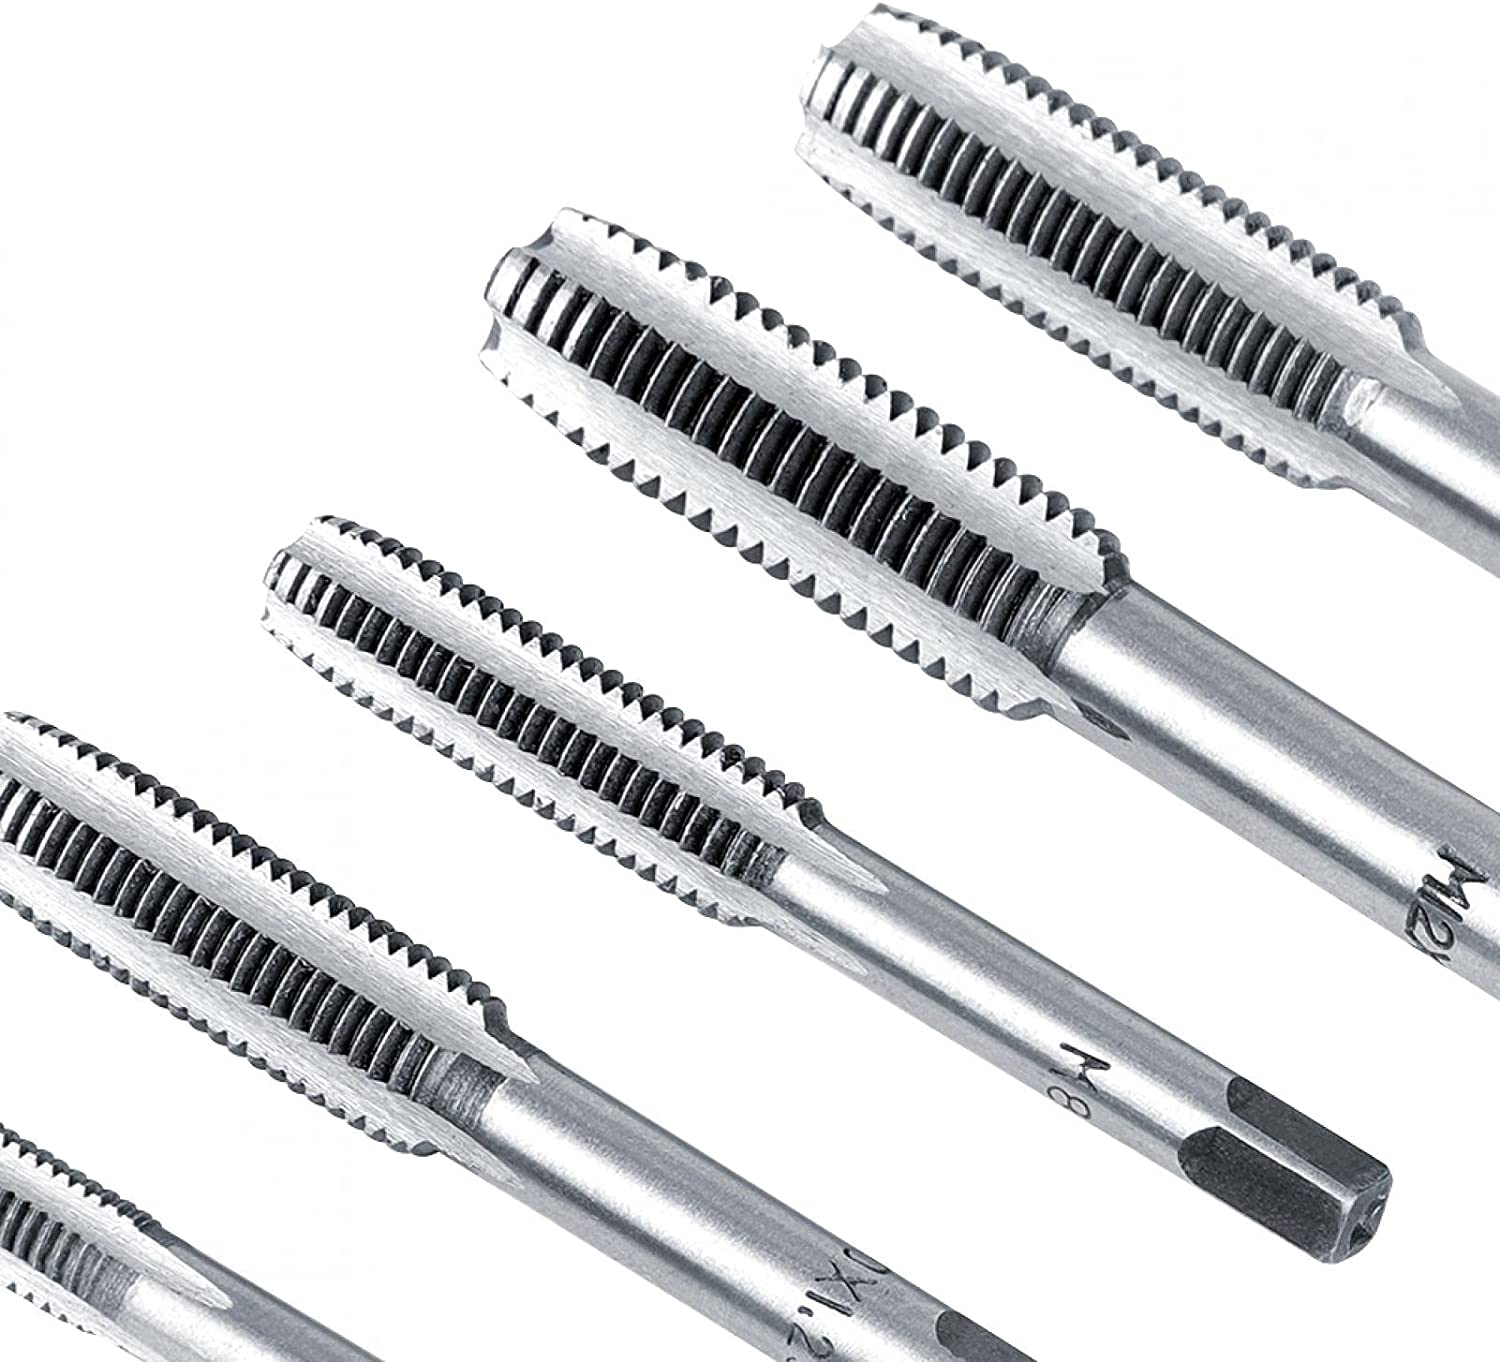 AYNEFY Tap and Don't miss the campaign Die Set Wrenches He Alloy Gauge Max 54% OFF Thread Steel